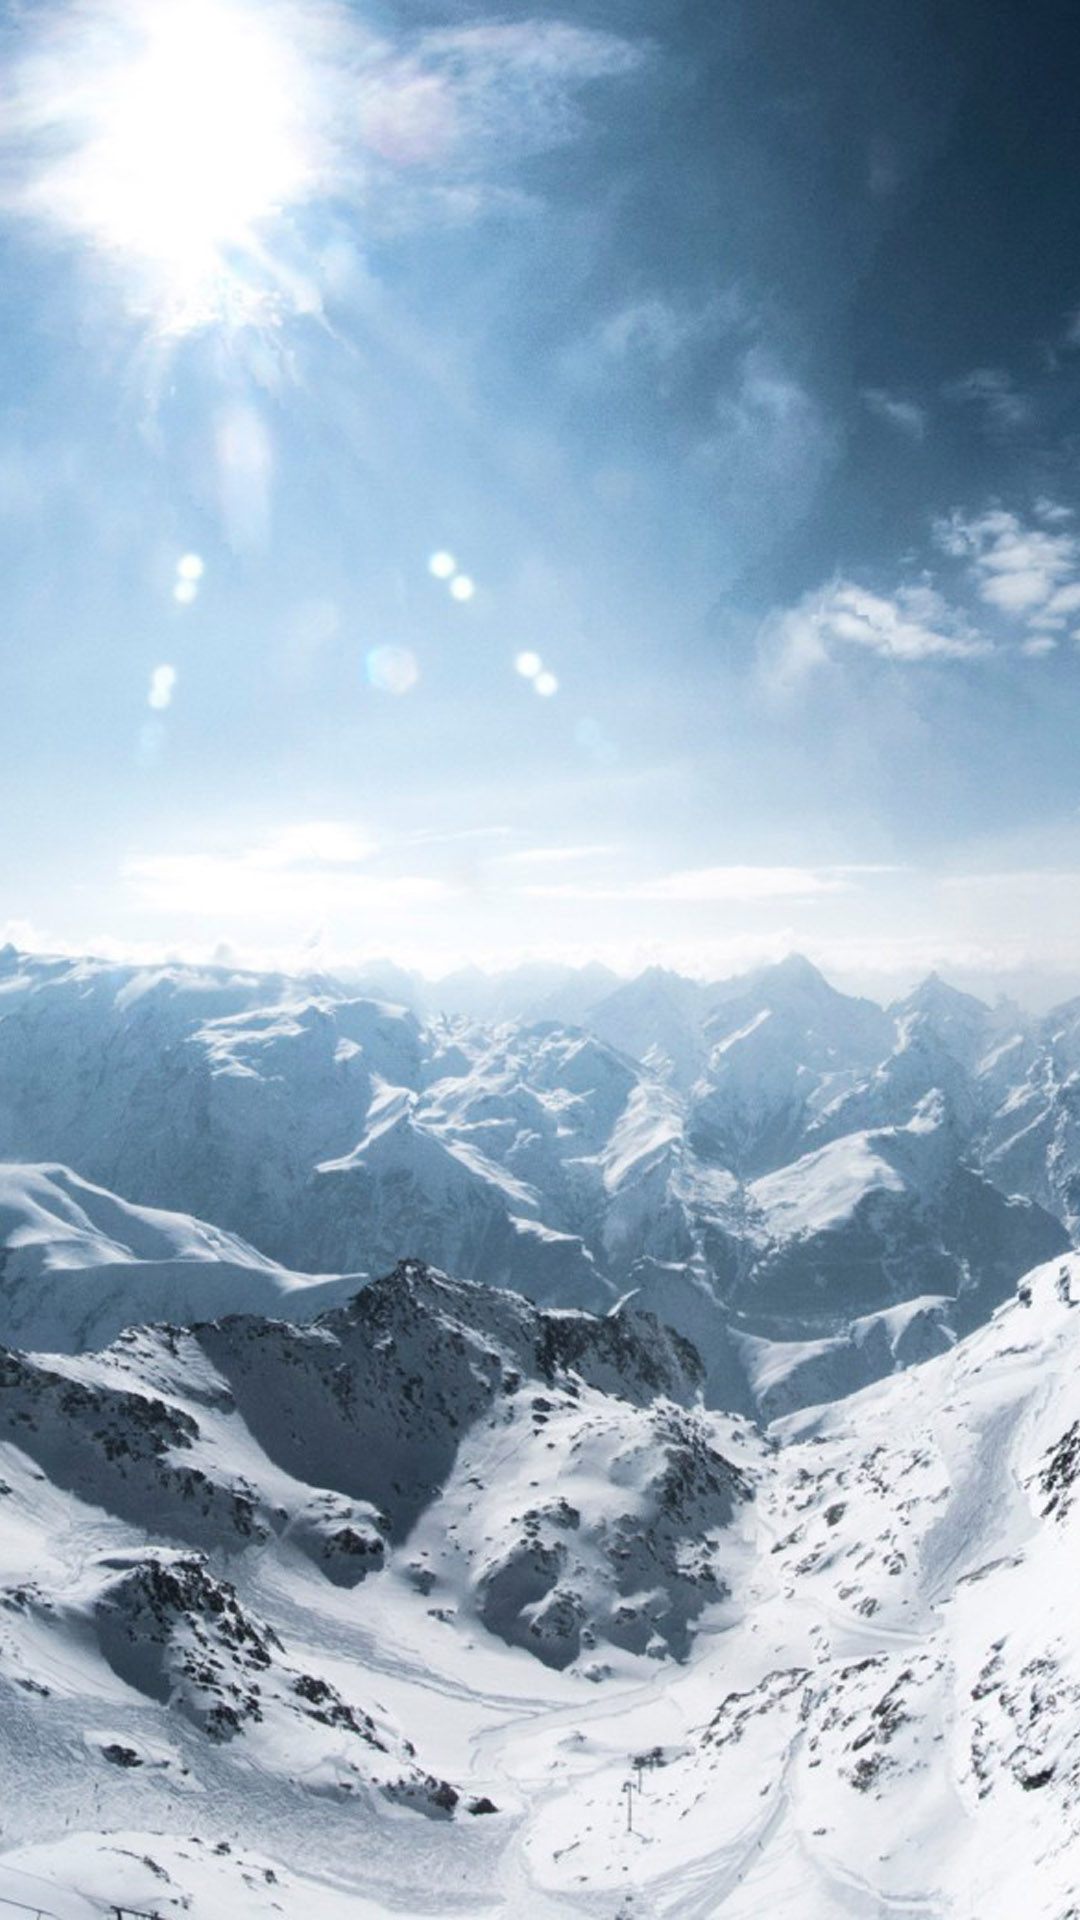 Free Fall Puppy Wallpaper Download Sun Light Snow Mountains In France Free Pure 4k